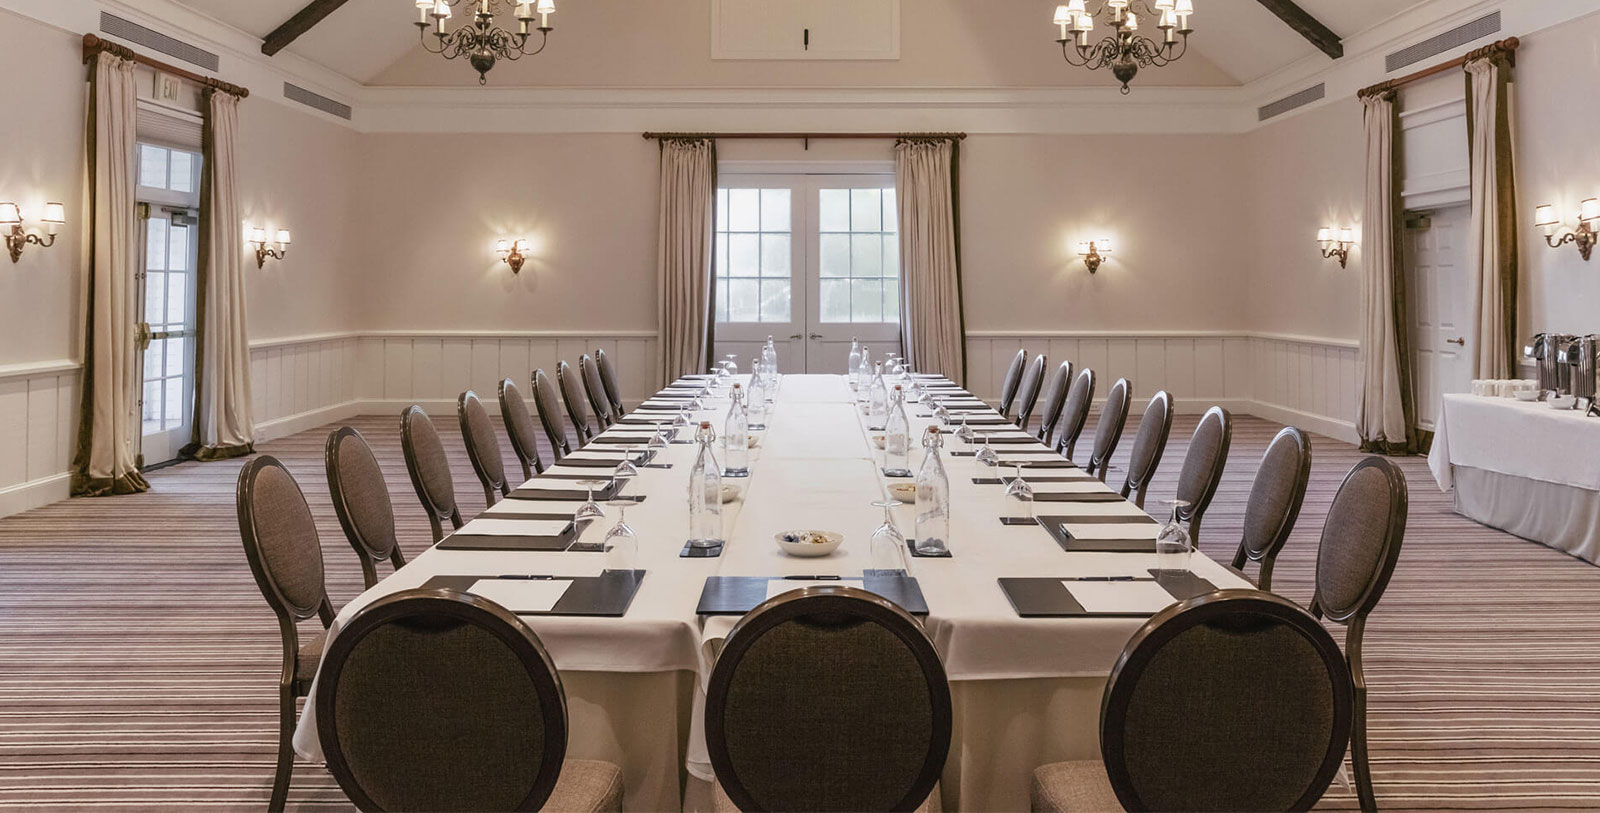 Image of Meeting Room, Inn at Perry Cabin in St. Michaels, Maryland, 1816, Member of Historic Hotels of America, Request For Proposal